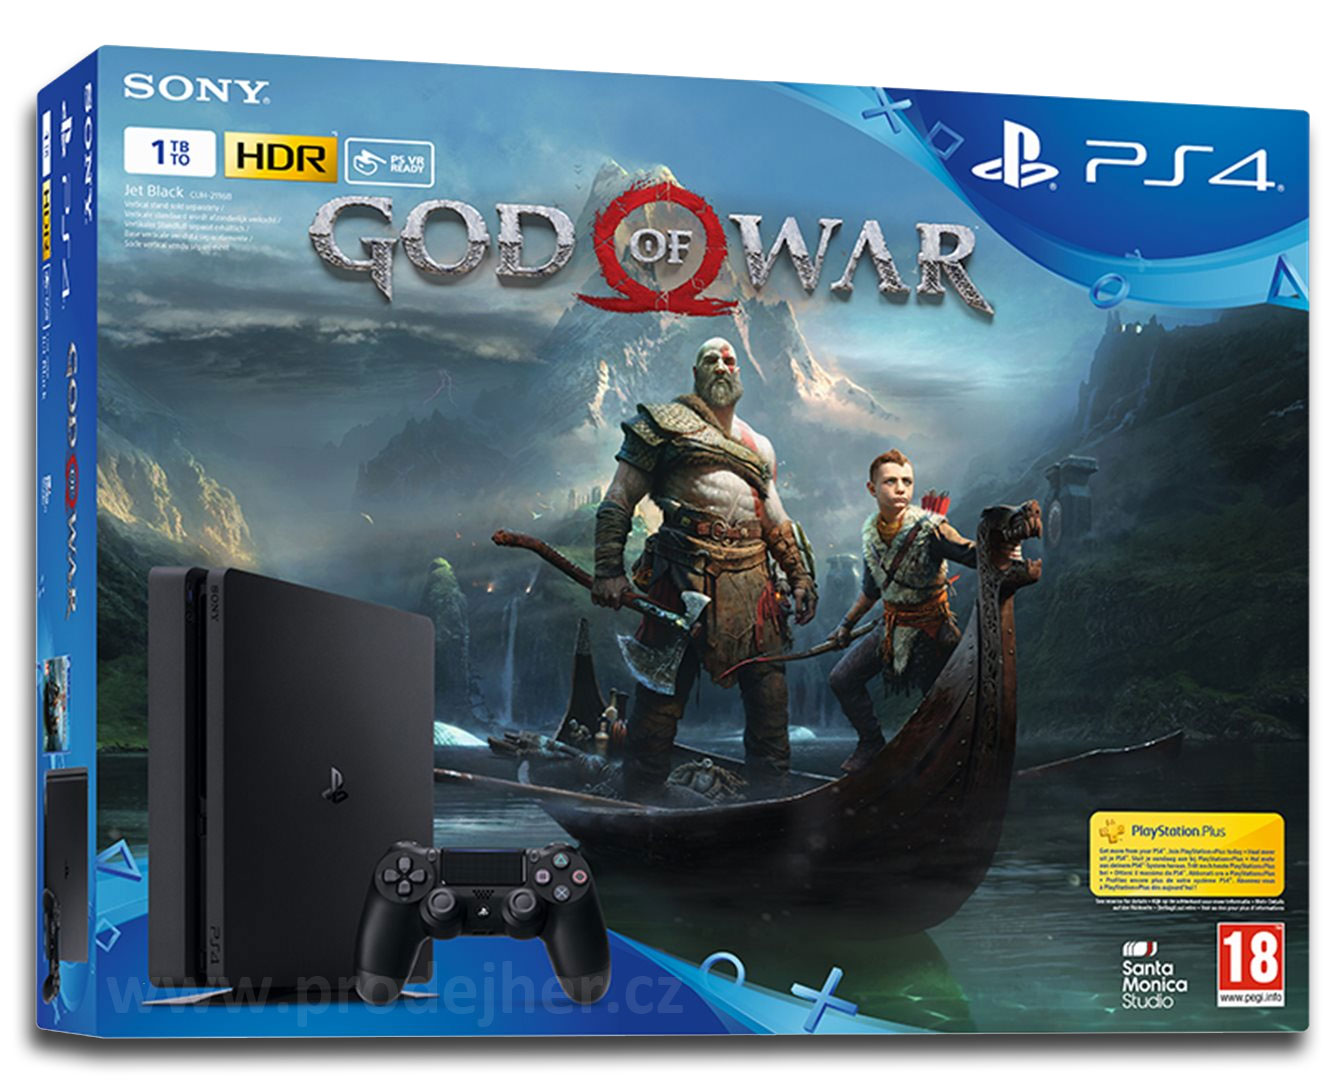 Sony PS 4 Slim 1TB God of War bundle